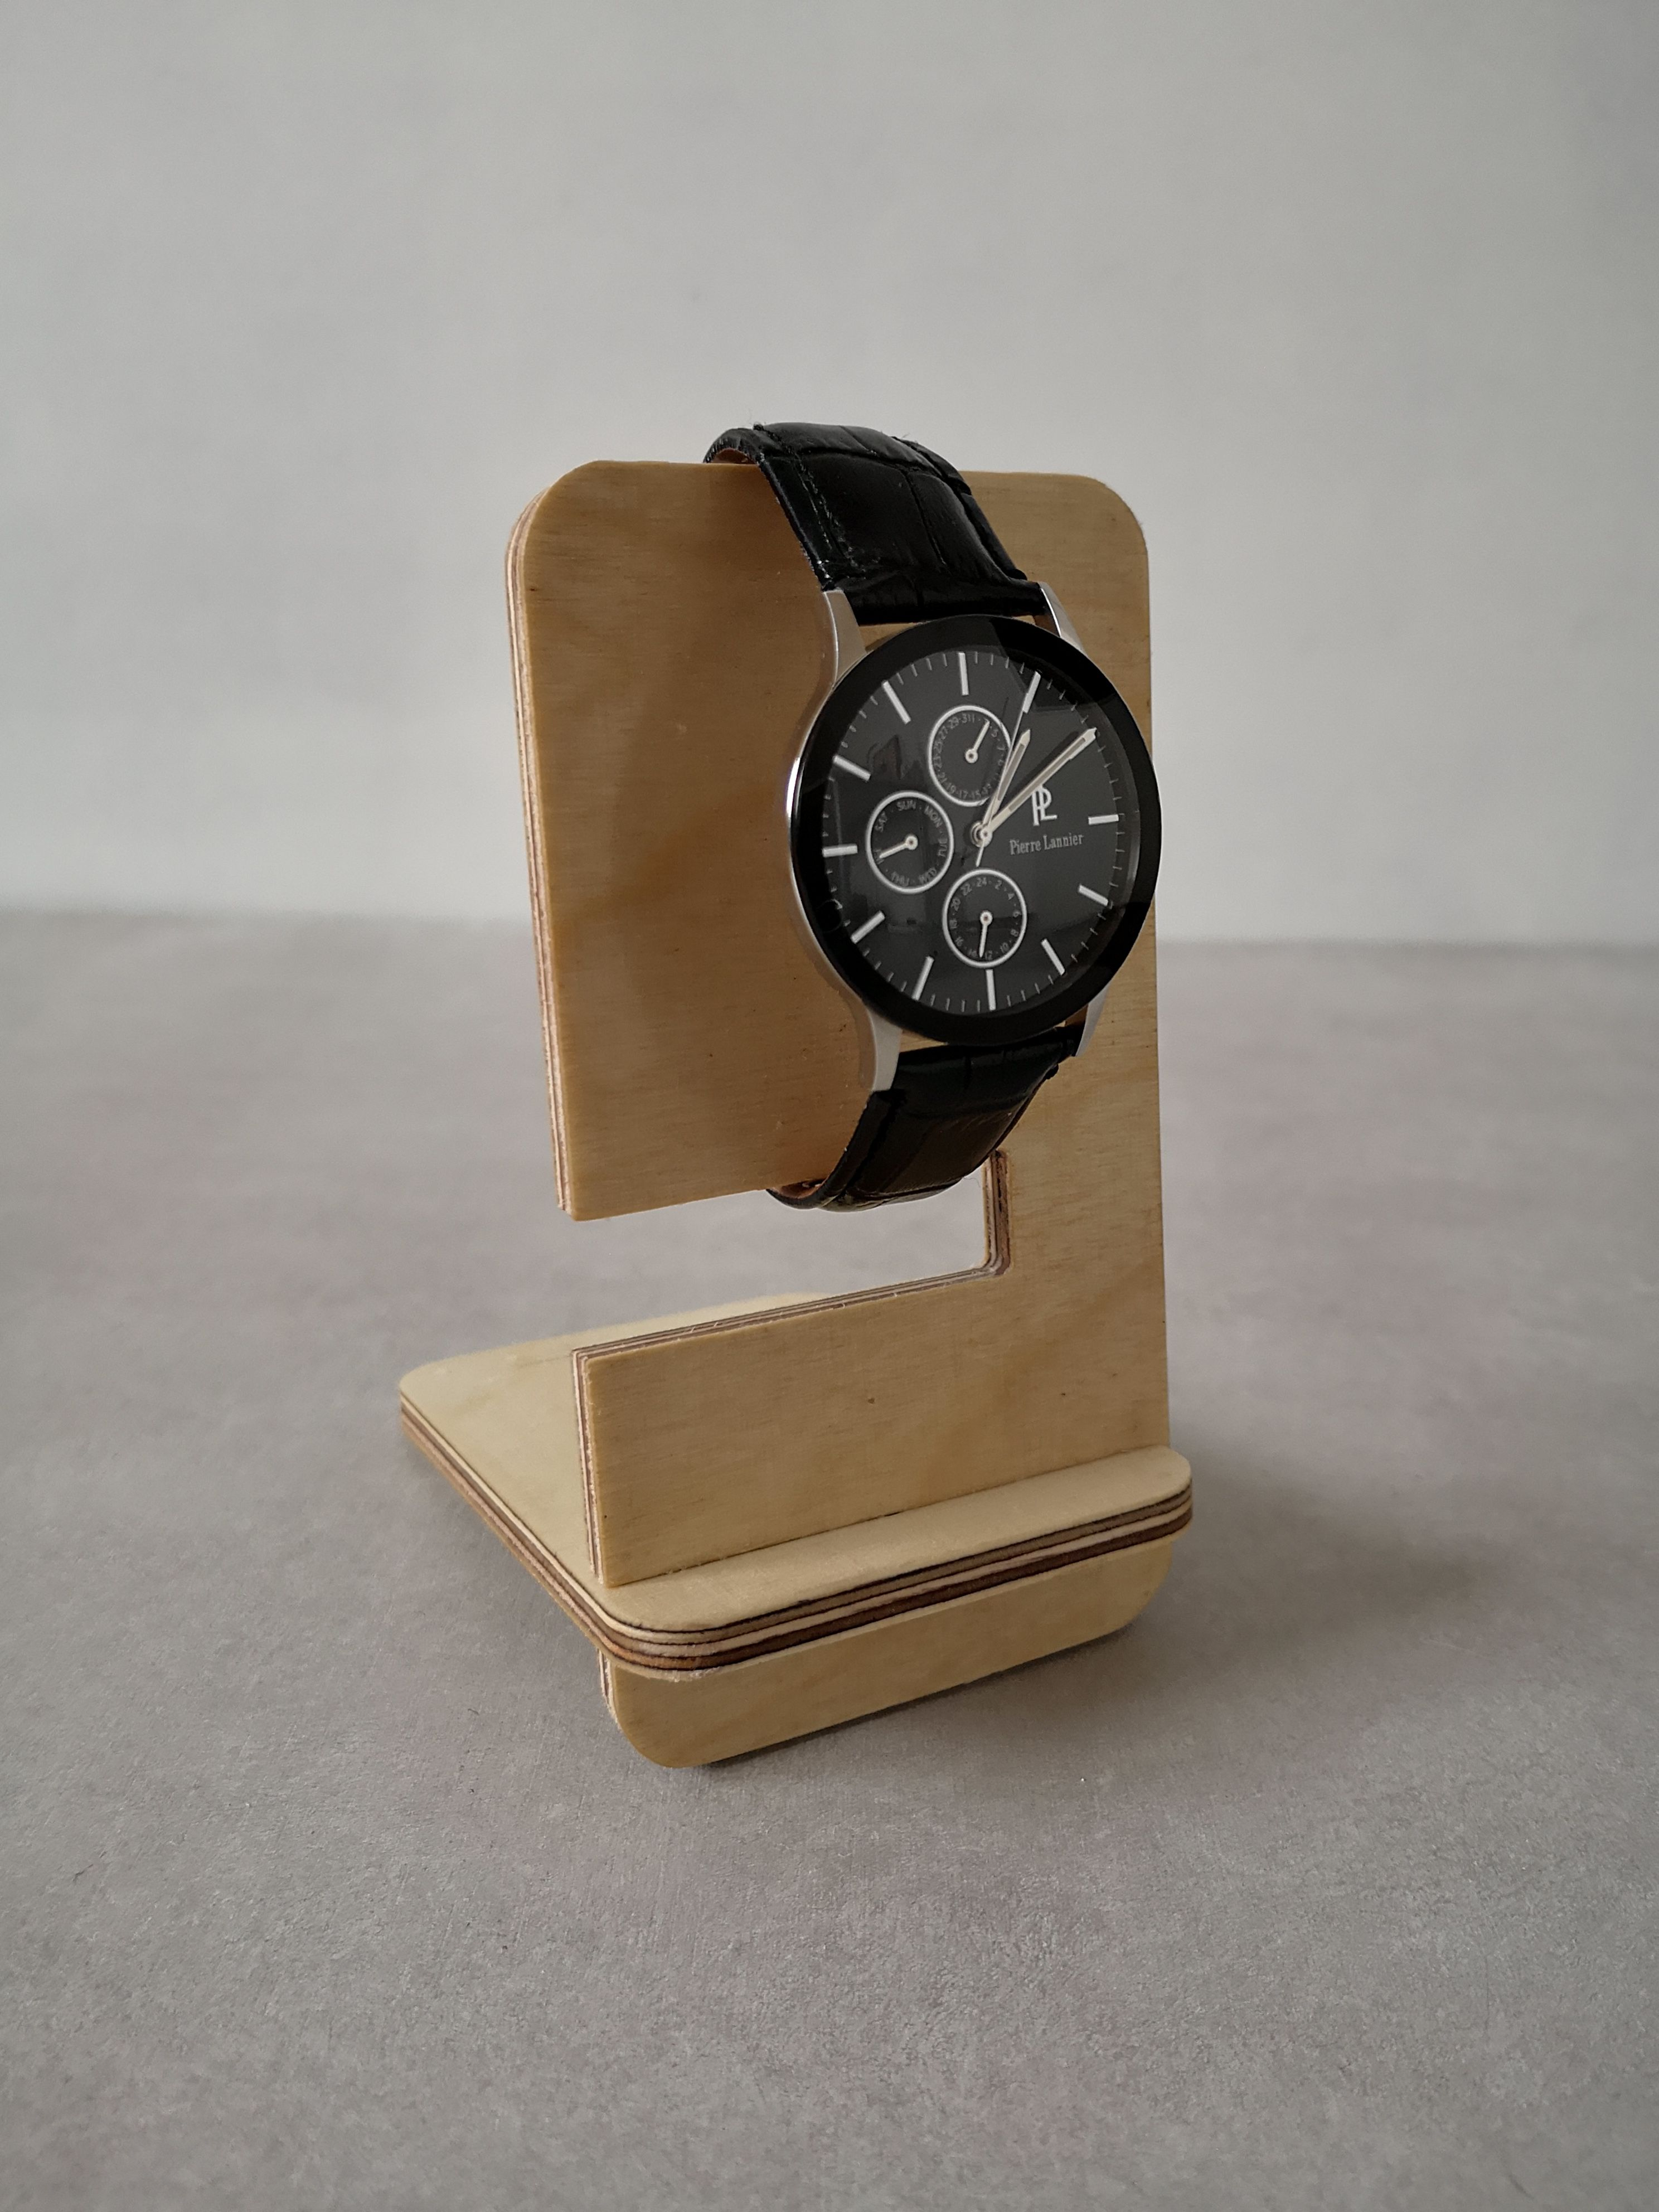 Gorgeous Decor For Your Favorite Watch Bracelet Organizer Holders Display